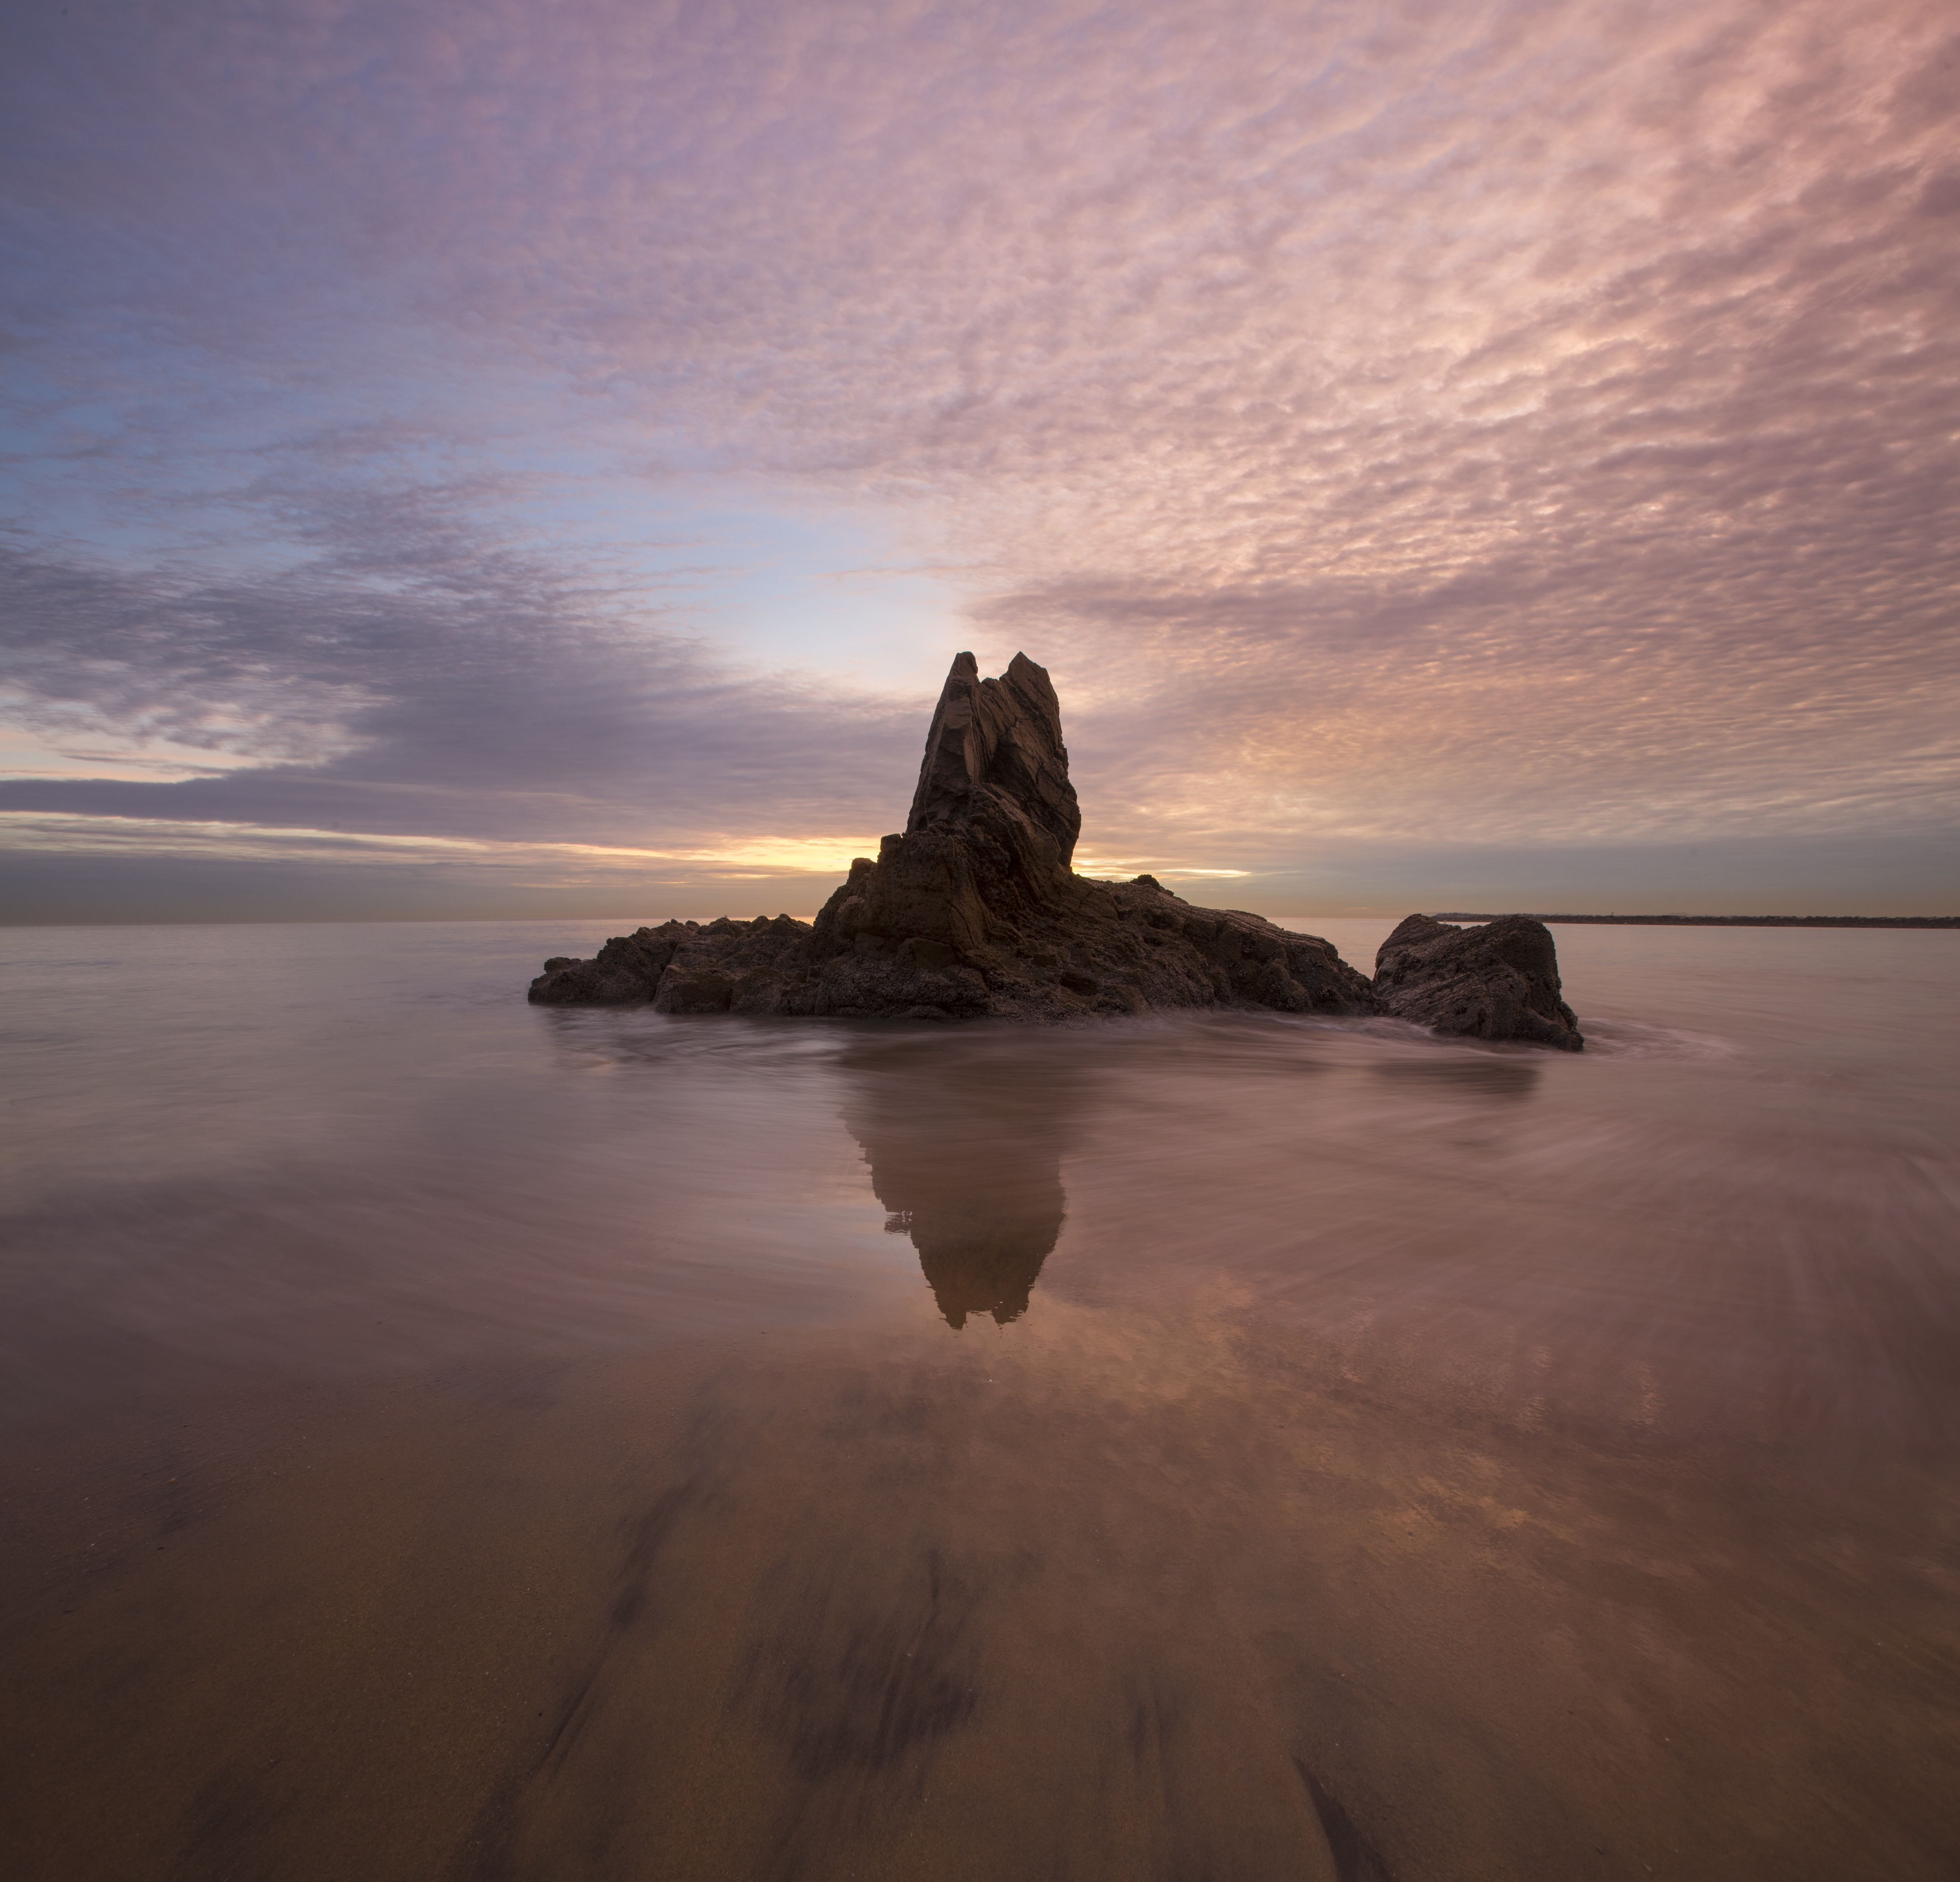 Island in Newport Beach, California standing between a sunset sky with patchy clouds and reflective waters